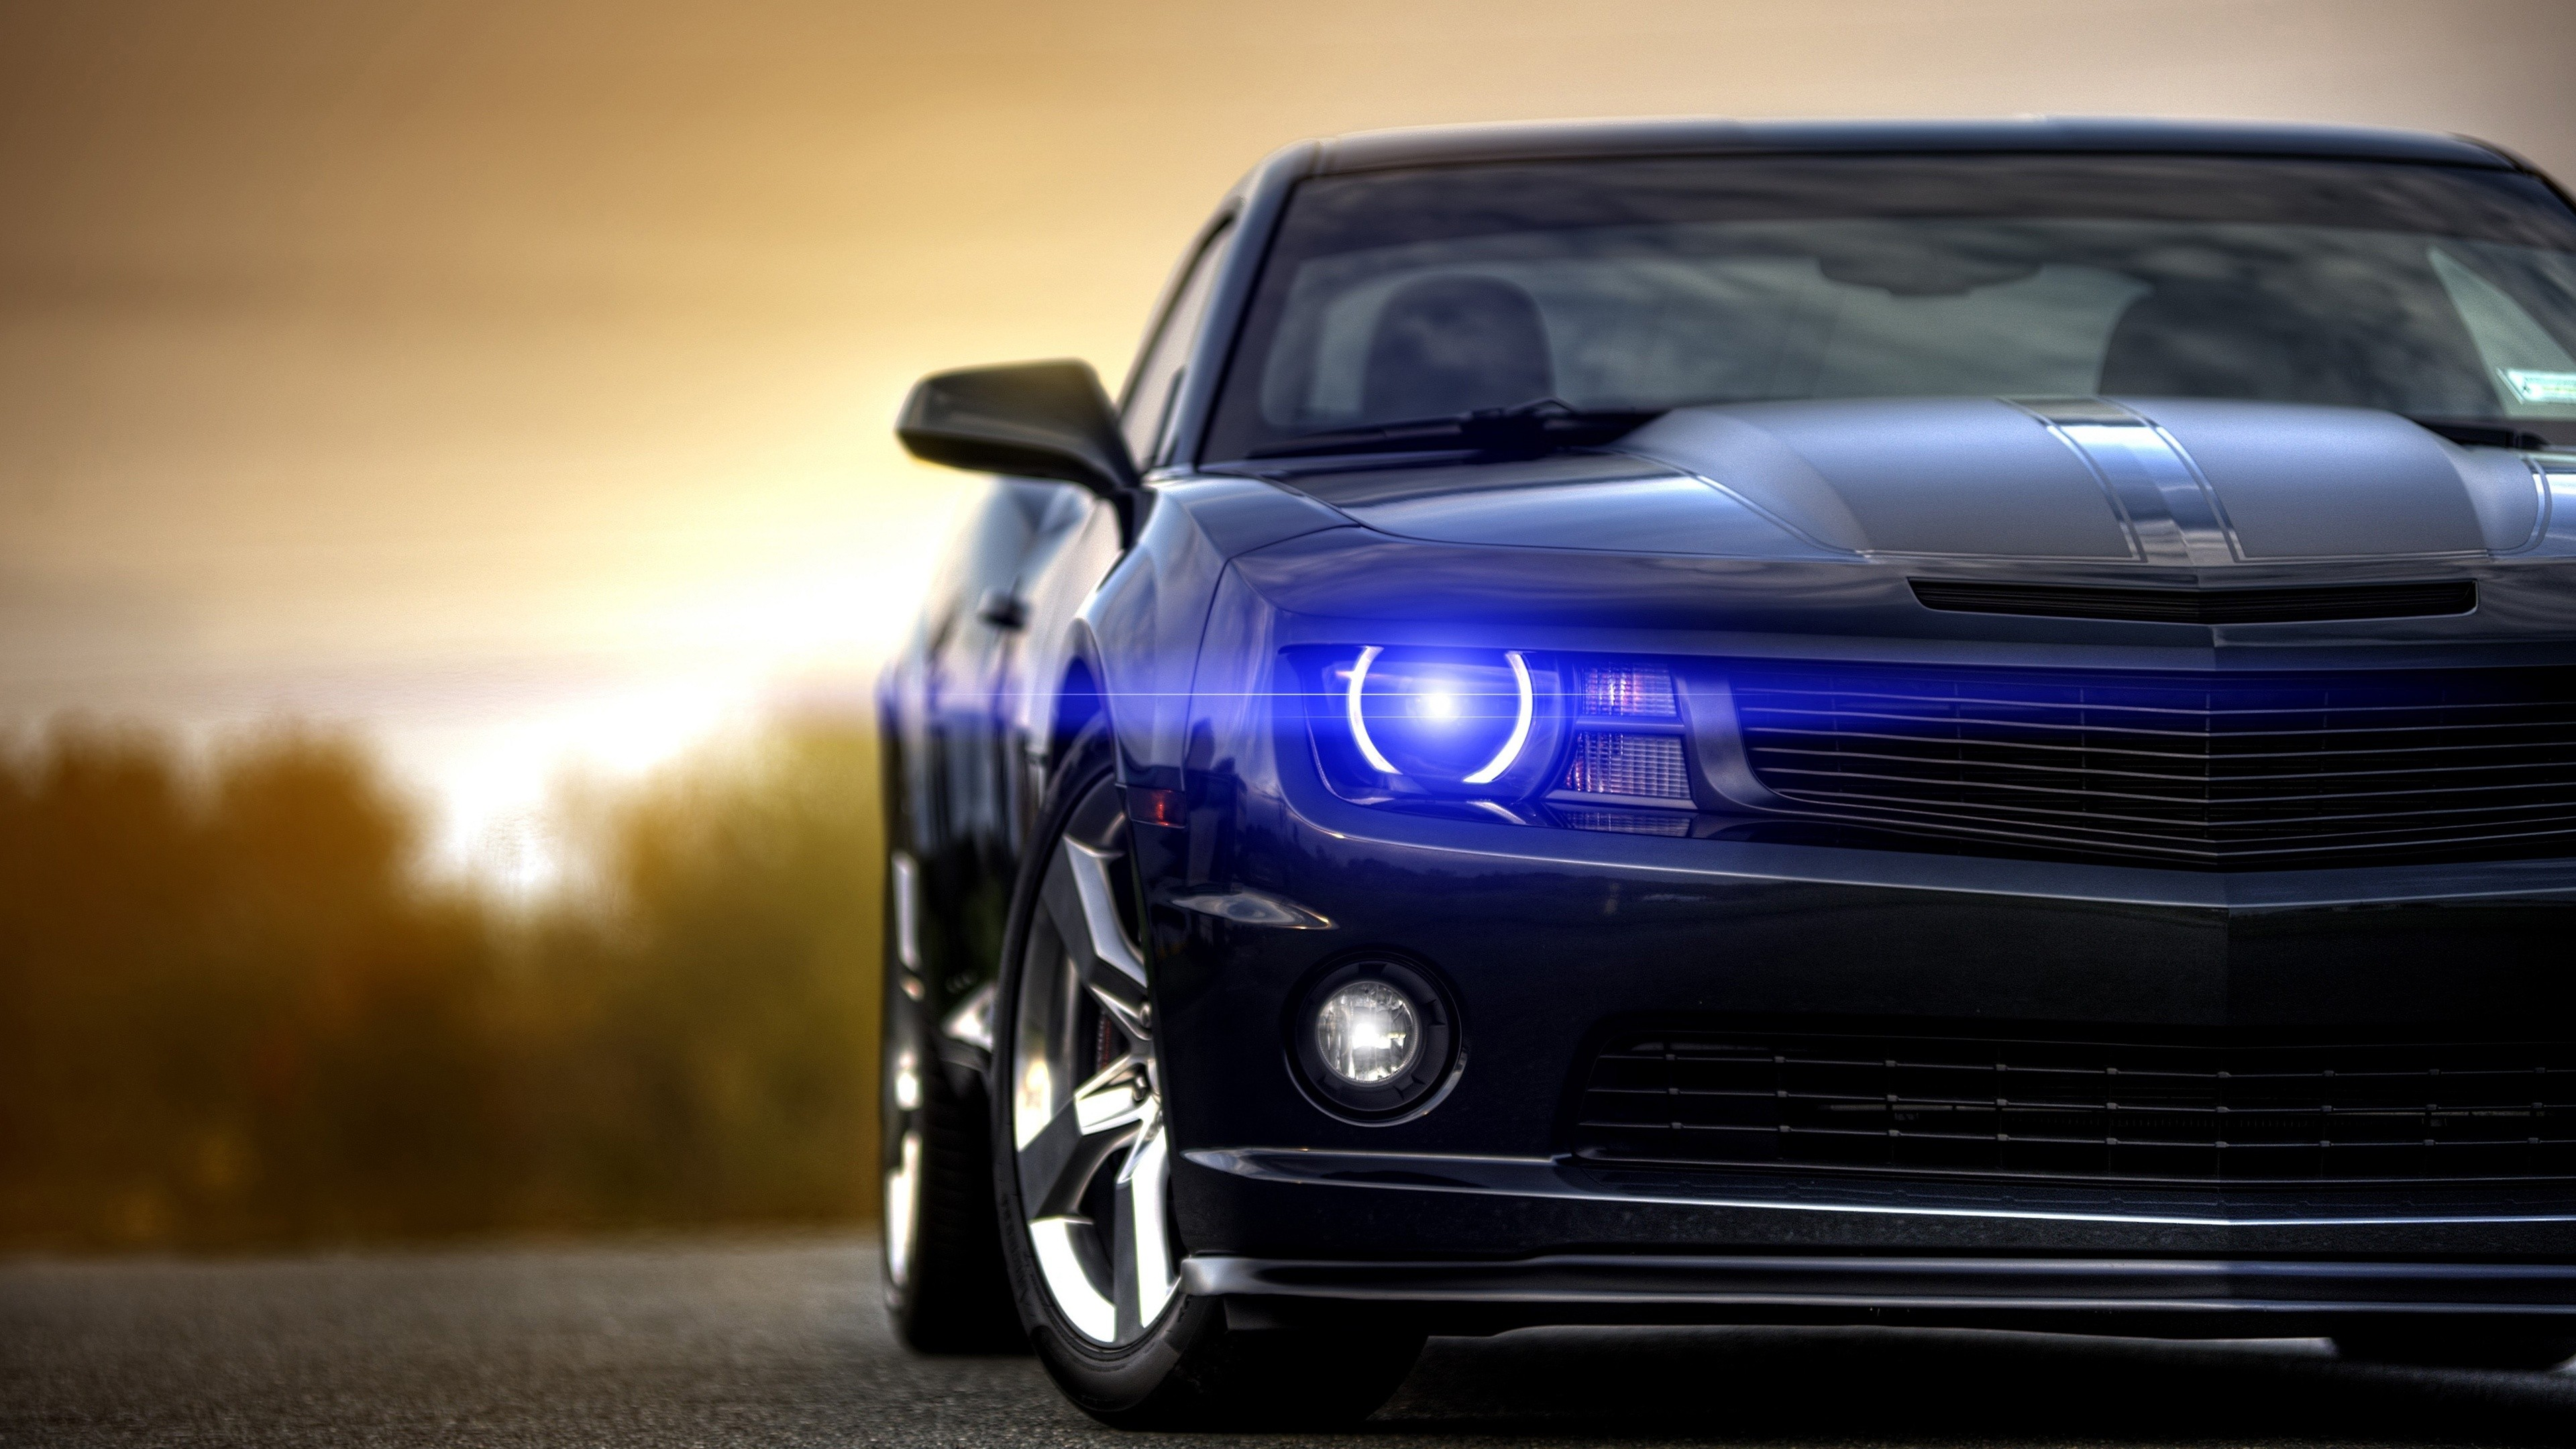 Car Wallpaper Download Free Beautiful Full Hd Backgrounds For